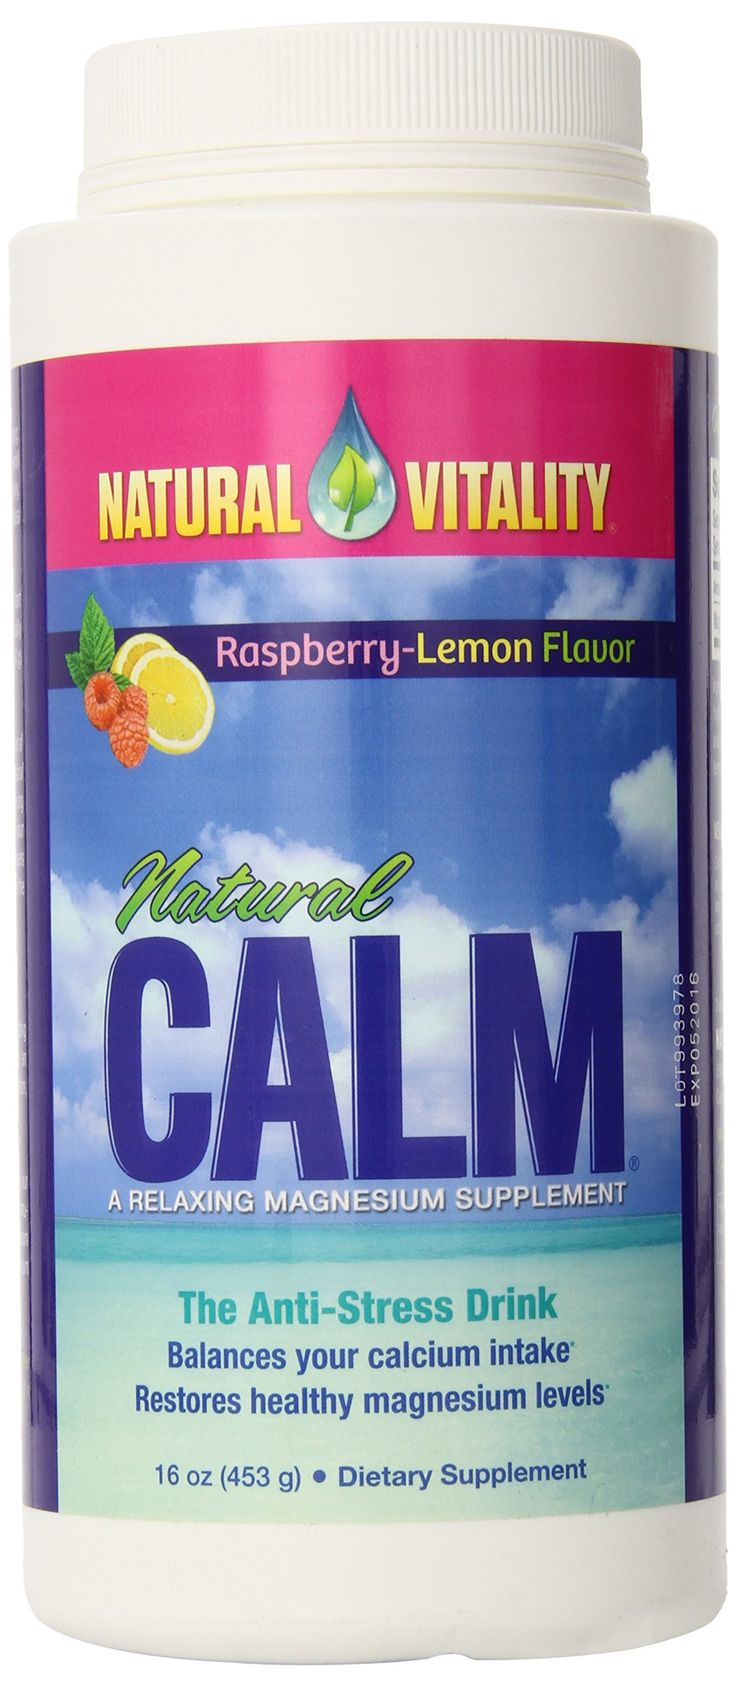 Natural Vitality Natural Calm Raspberry Lemon 16 oz - helps to aid digestion and sleep while traveling